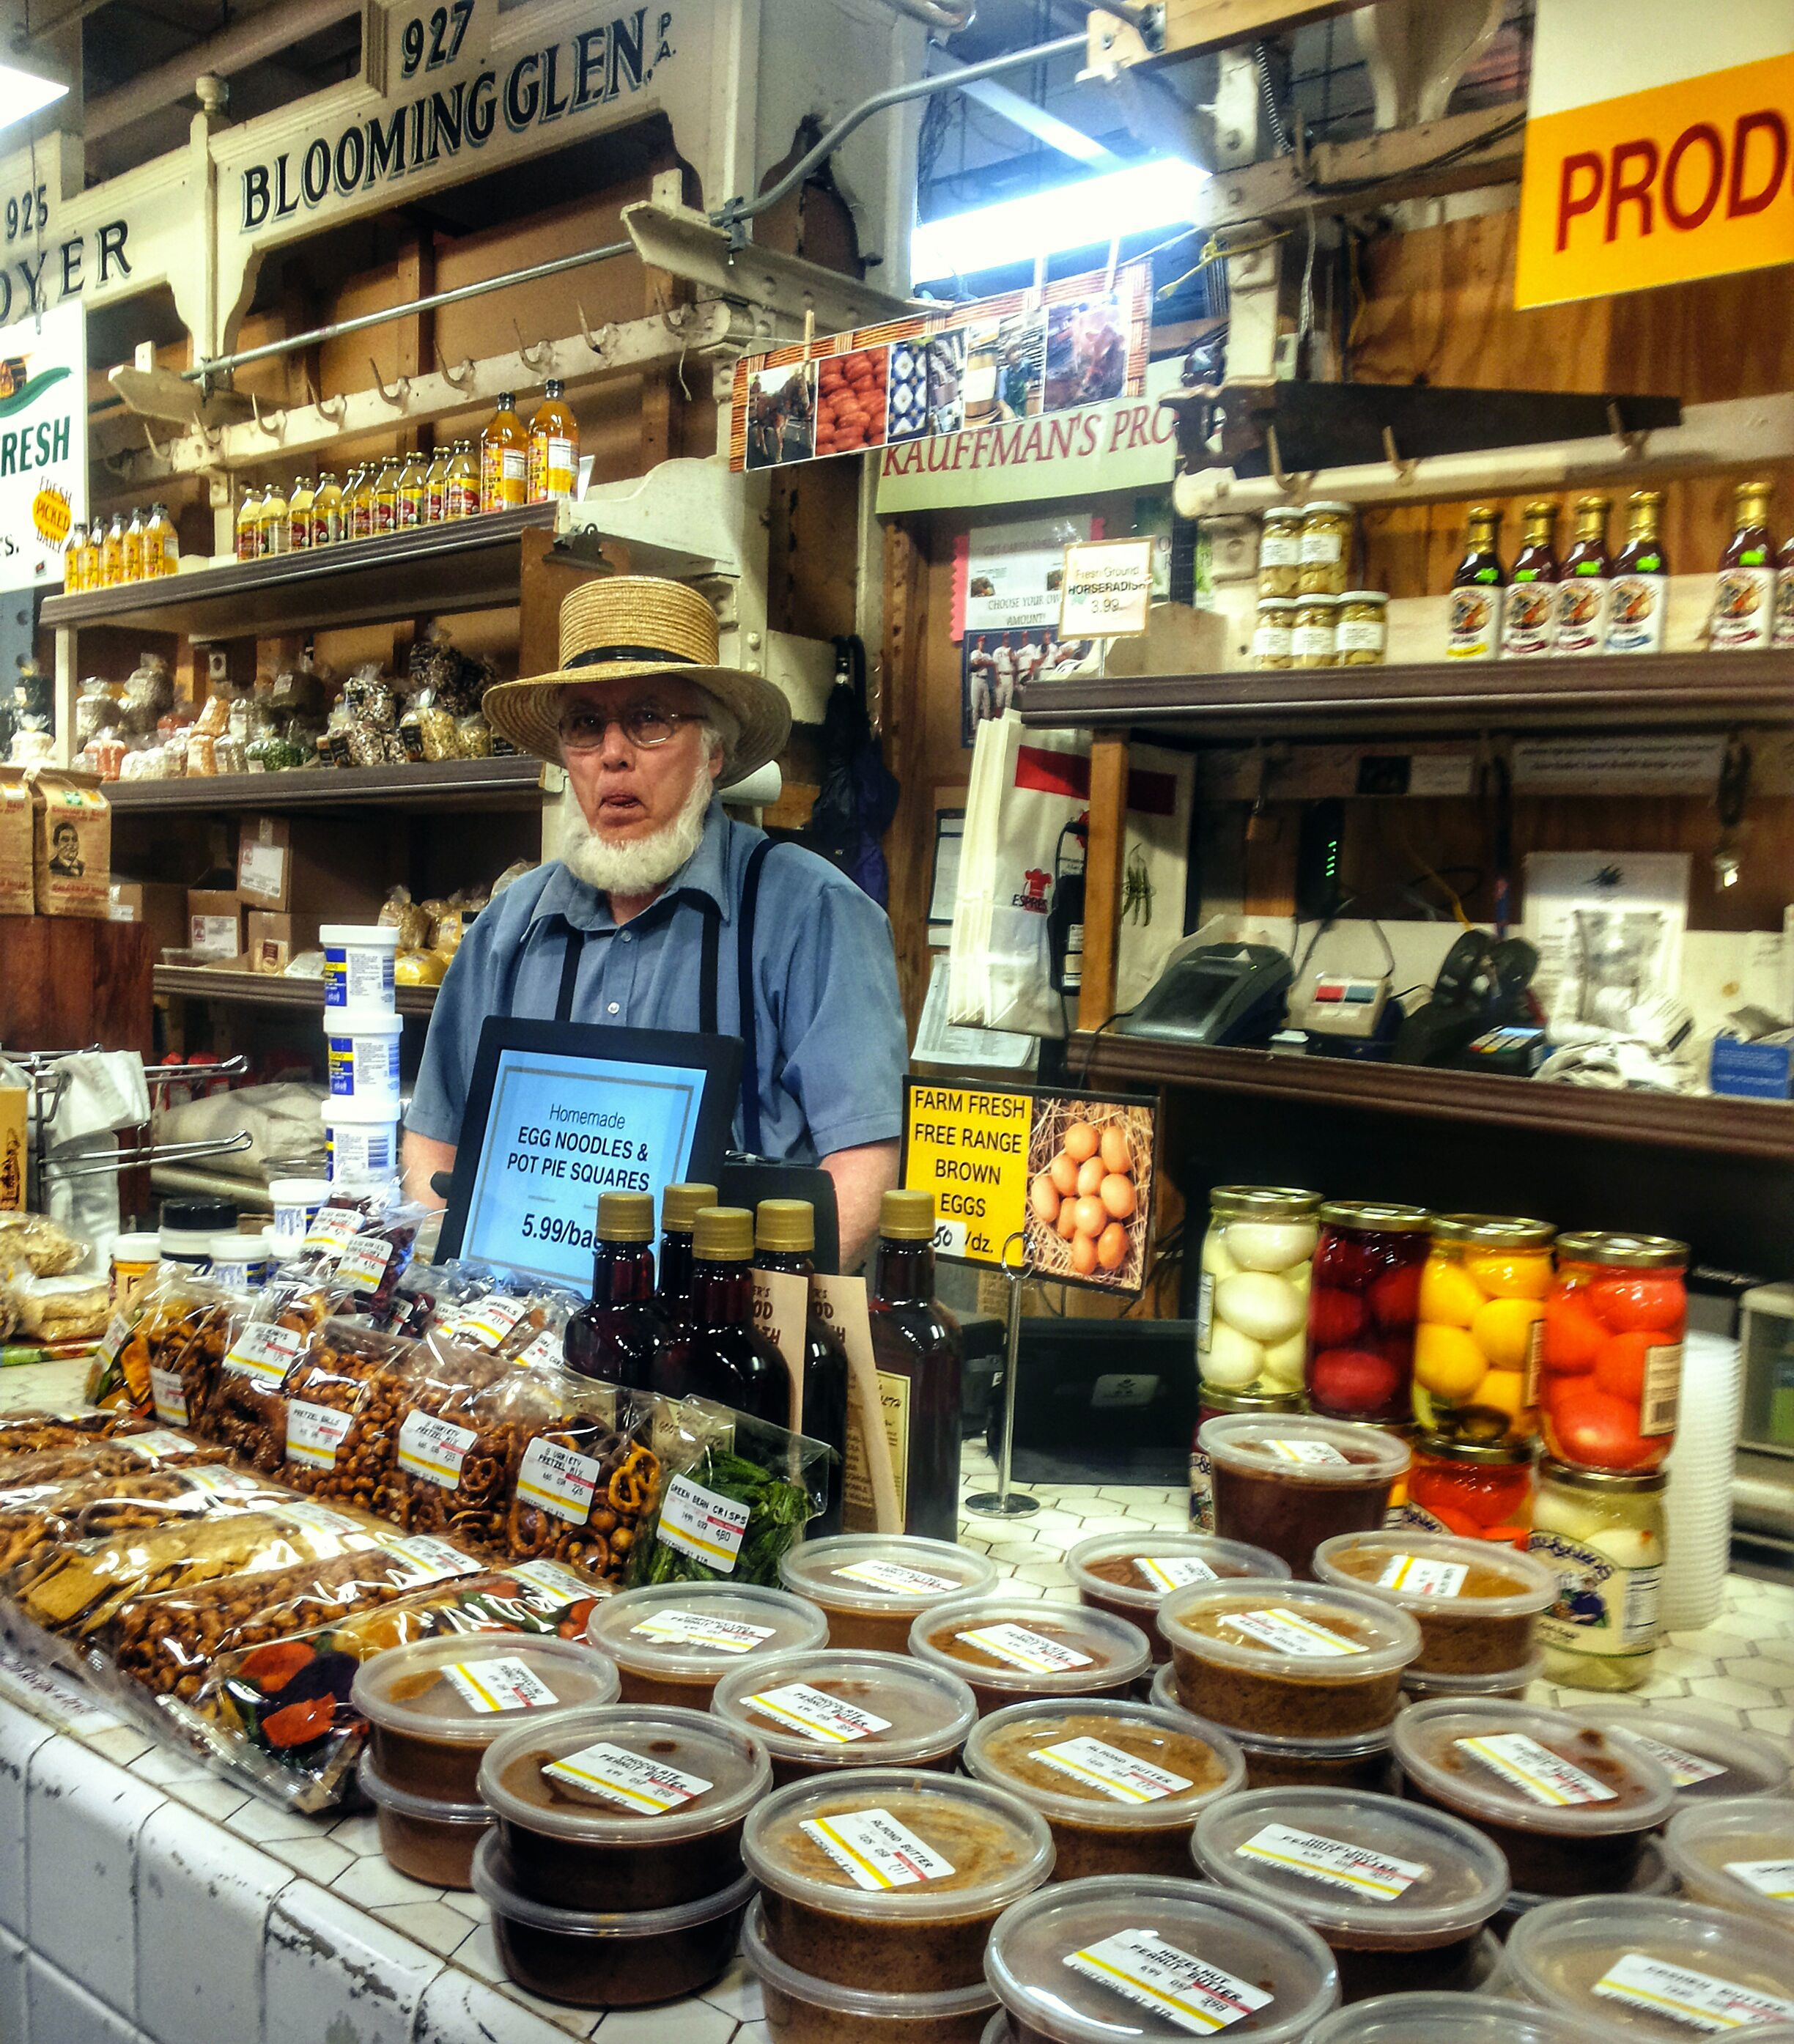 Amish farmer at Reading Terminal Market in Philadelphia. His peanut butter was great!